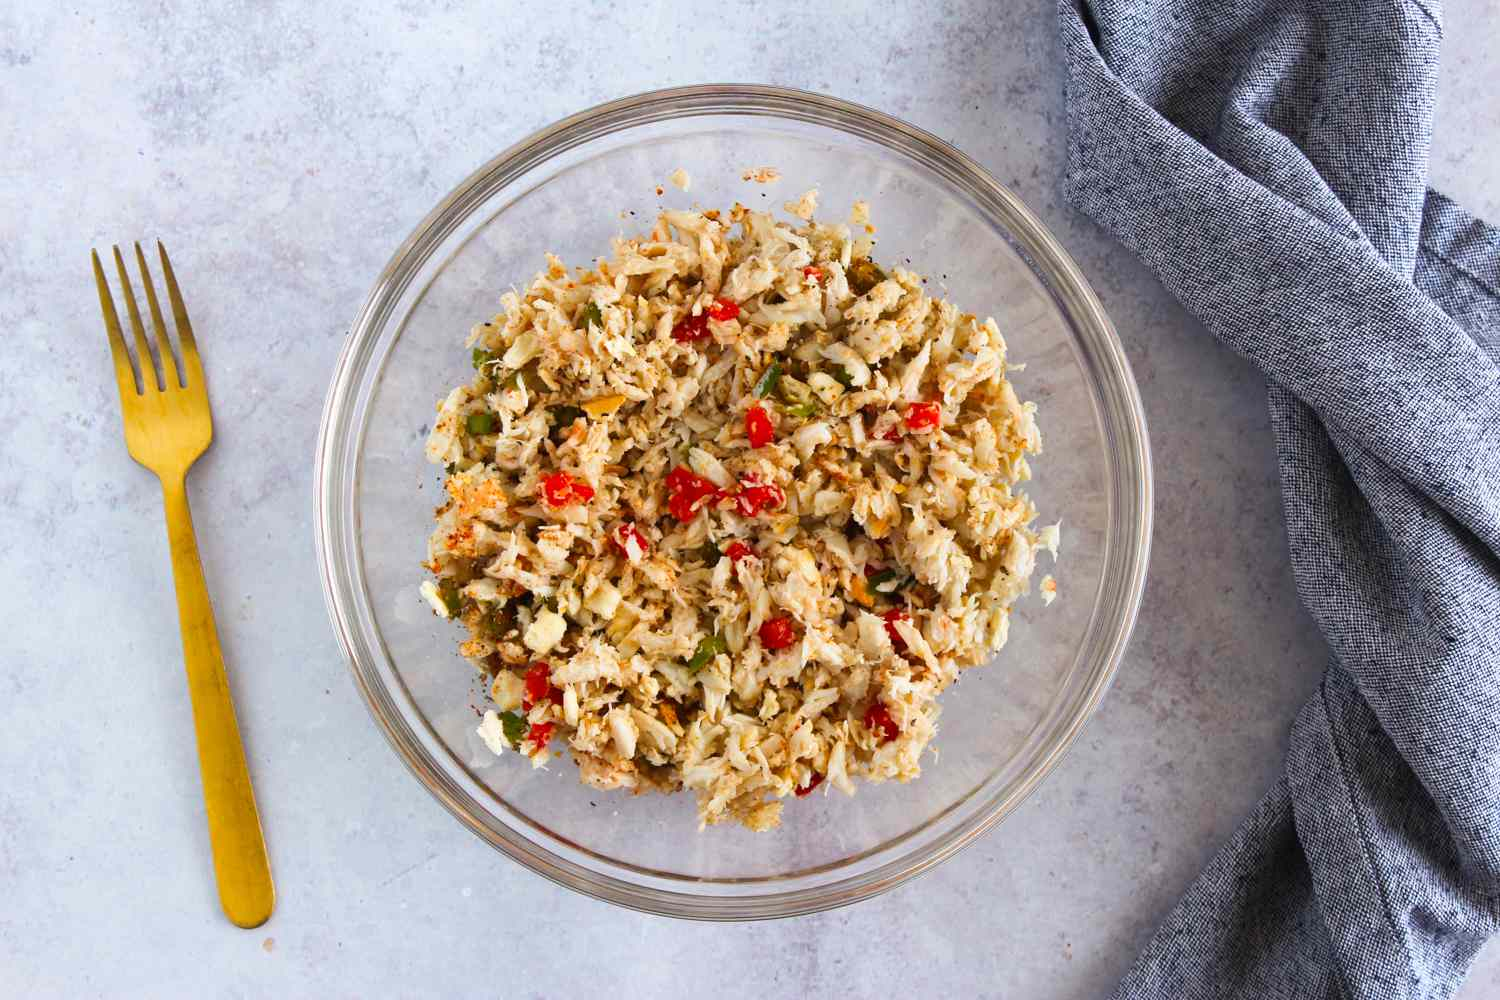 Bowl containing crabmeat, bell pepper, seasonings, and crushed crackers